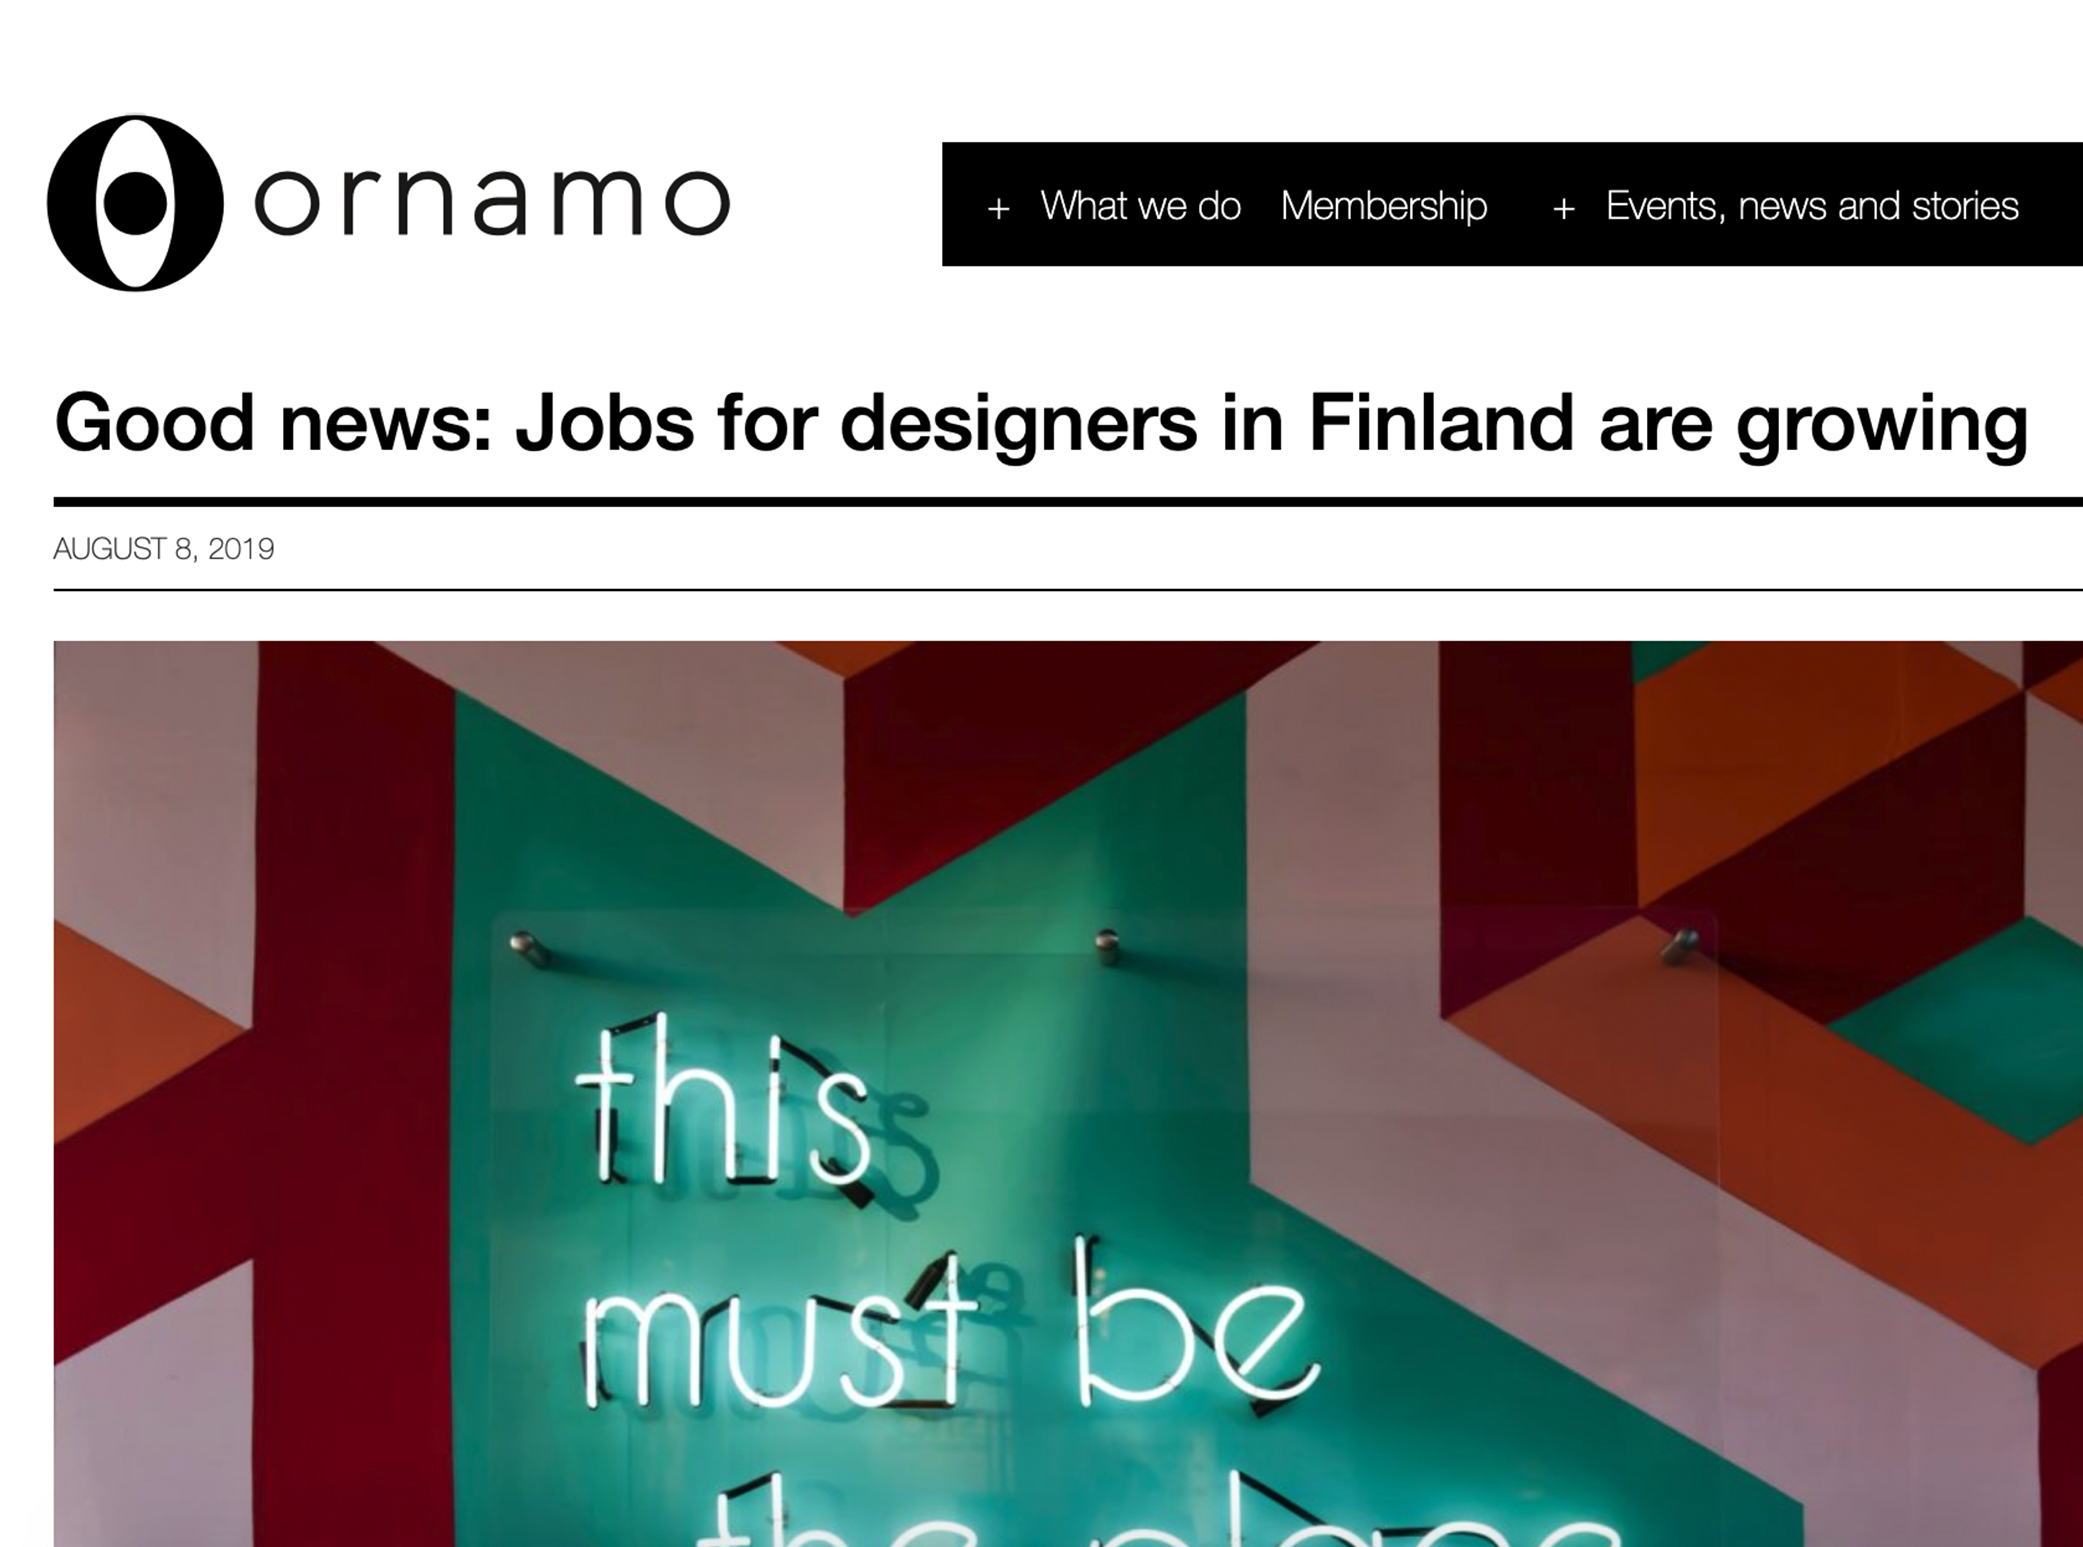 Good news: Jobs for designers in Finland are growing